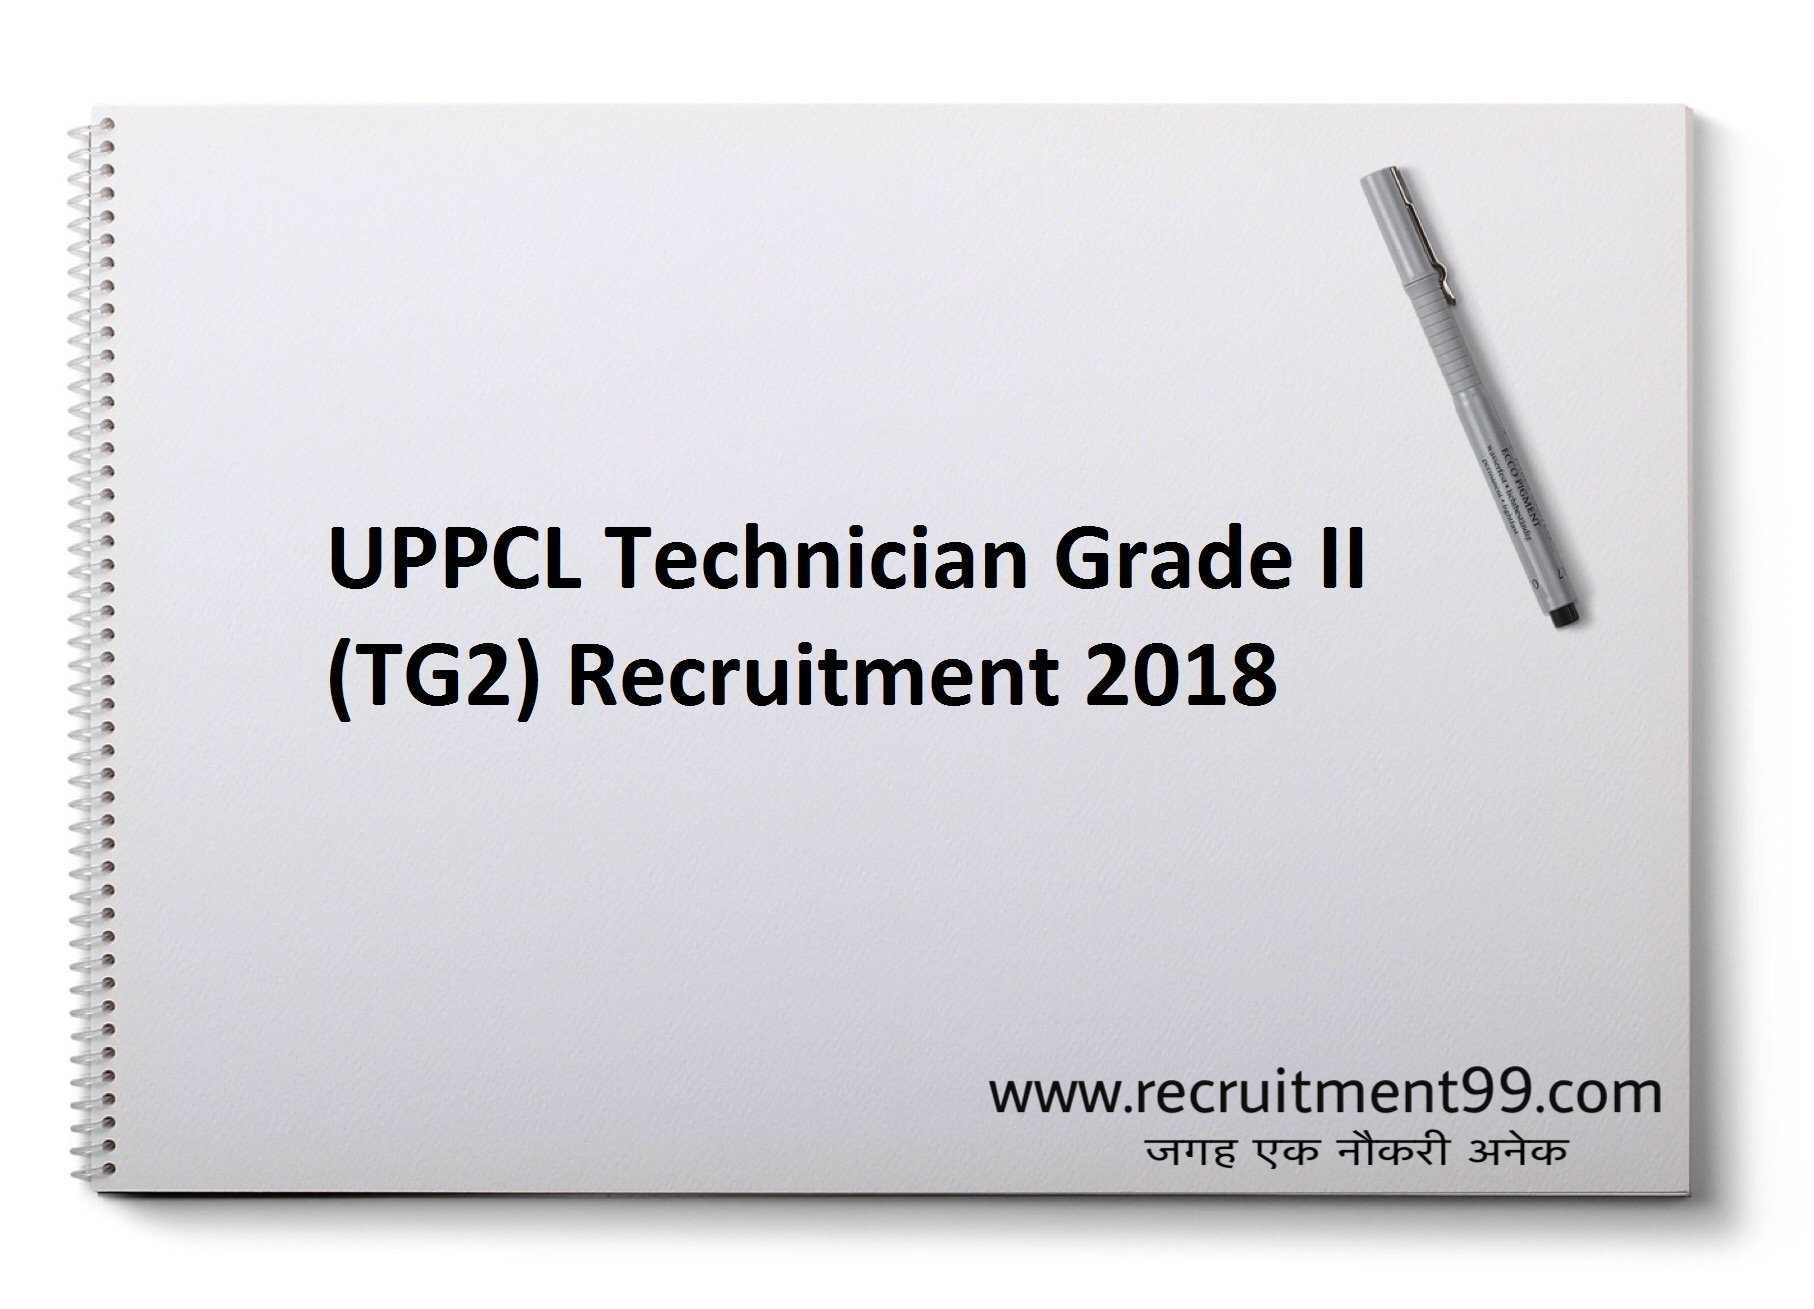 UPPCL Technician Grade II TG2 Recruitment Admit Card & Result 2018